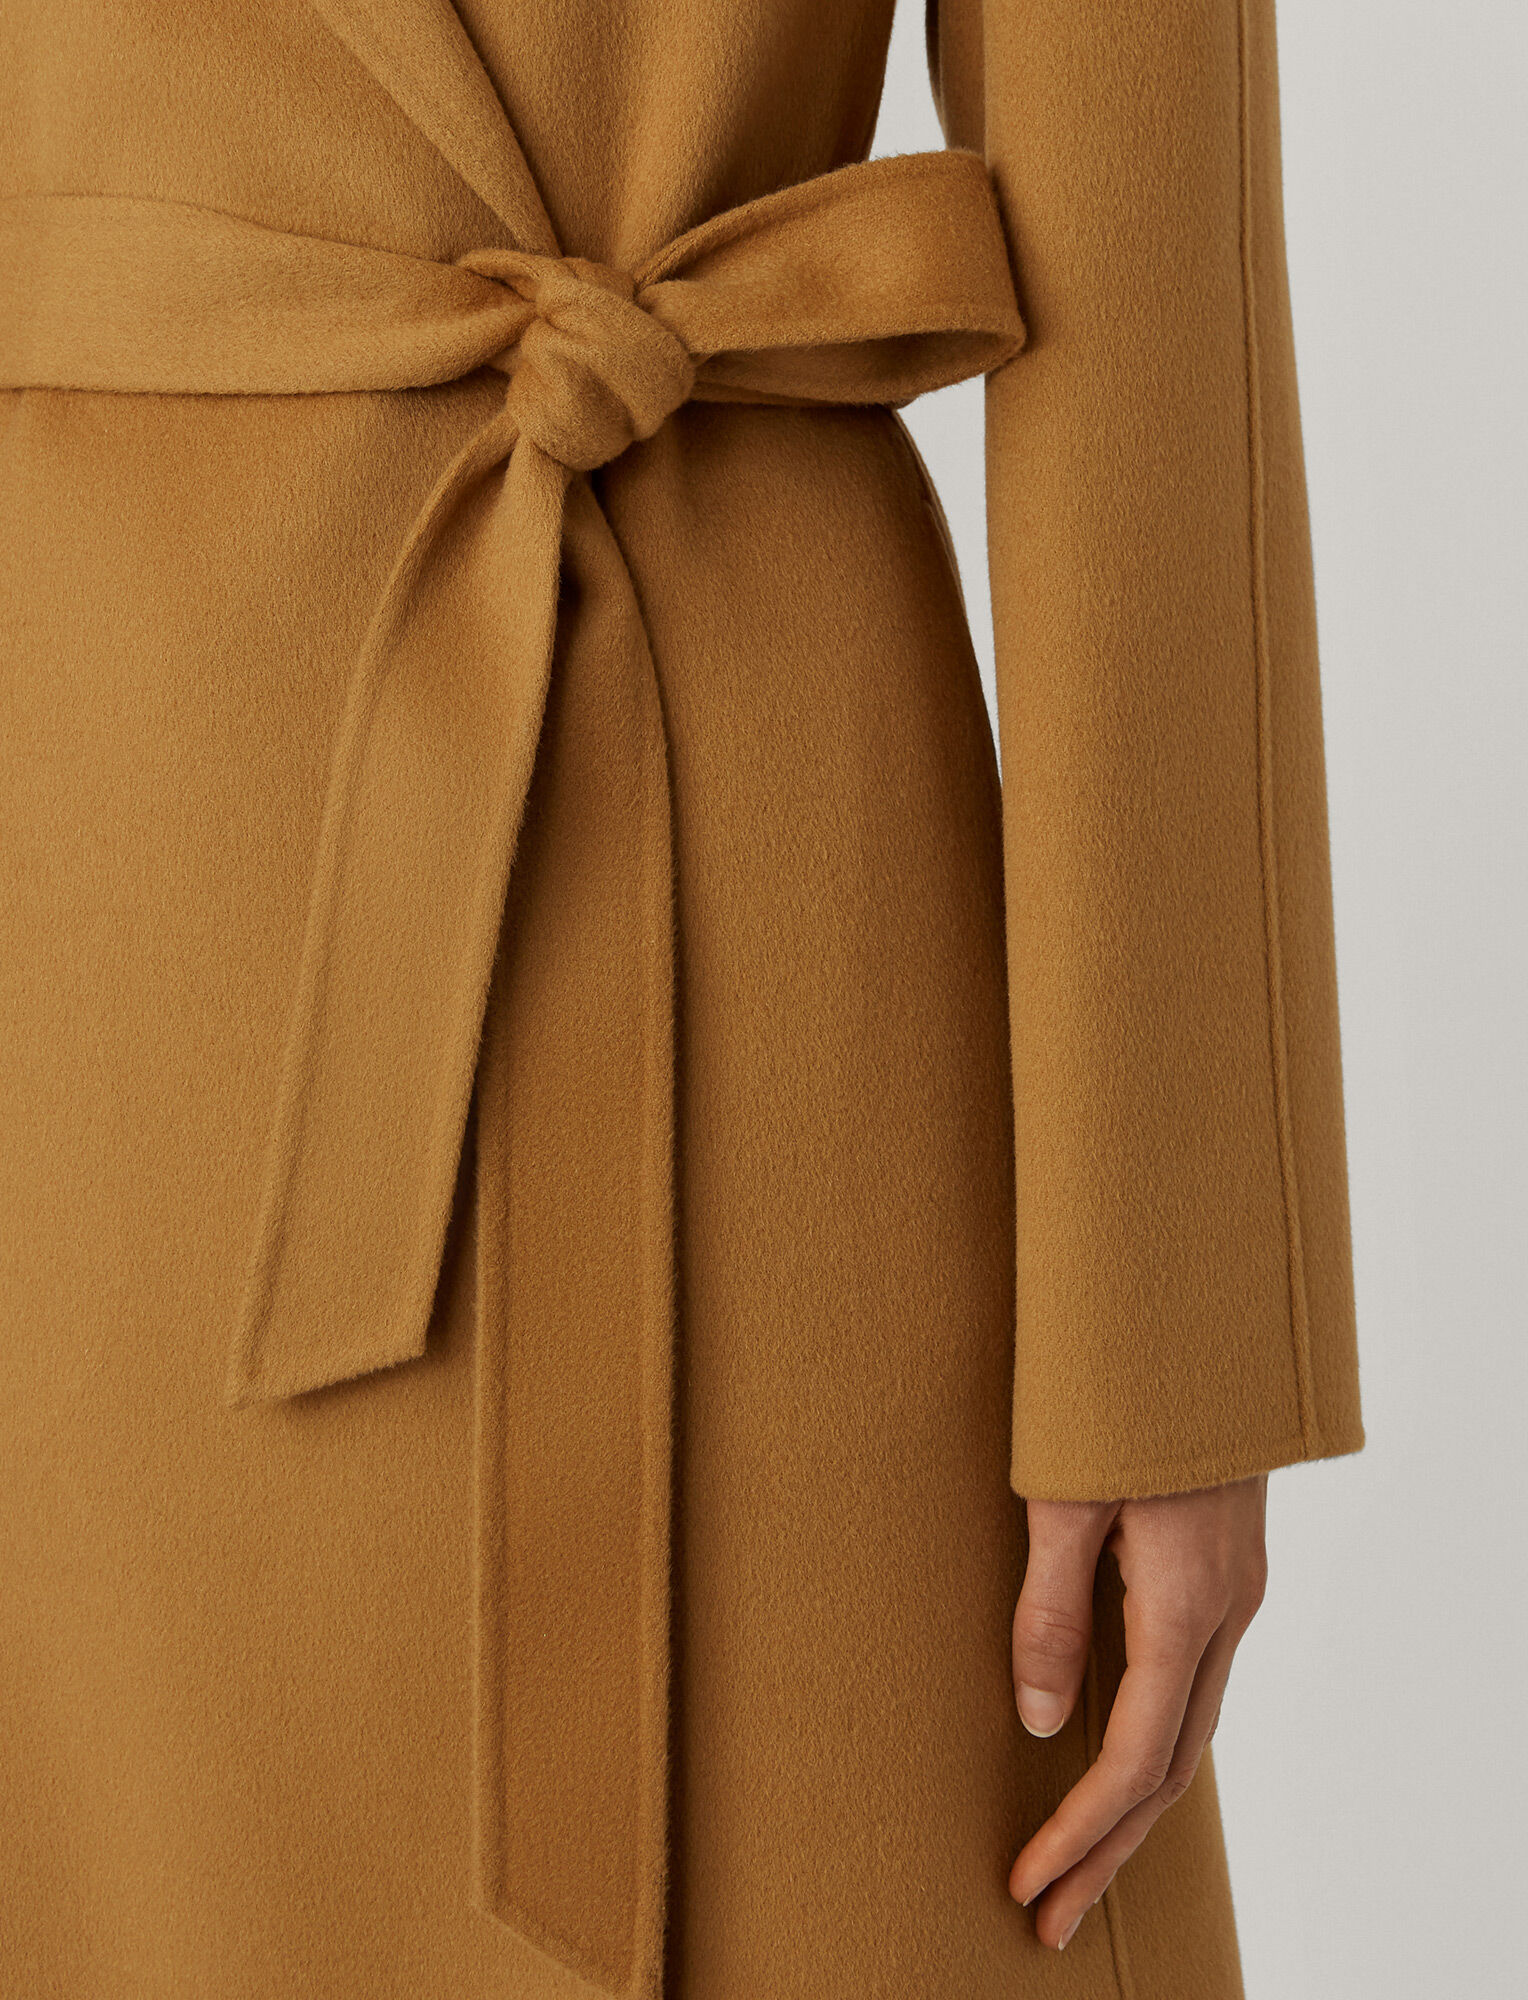 Joseph, Double Face Cashmere Cenda Long Coat, in CAMEL